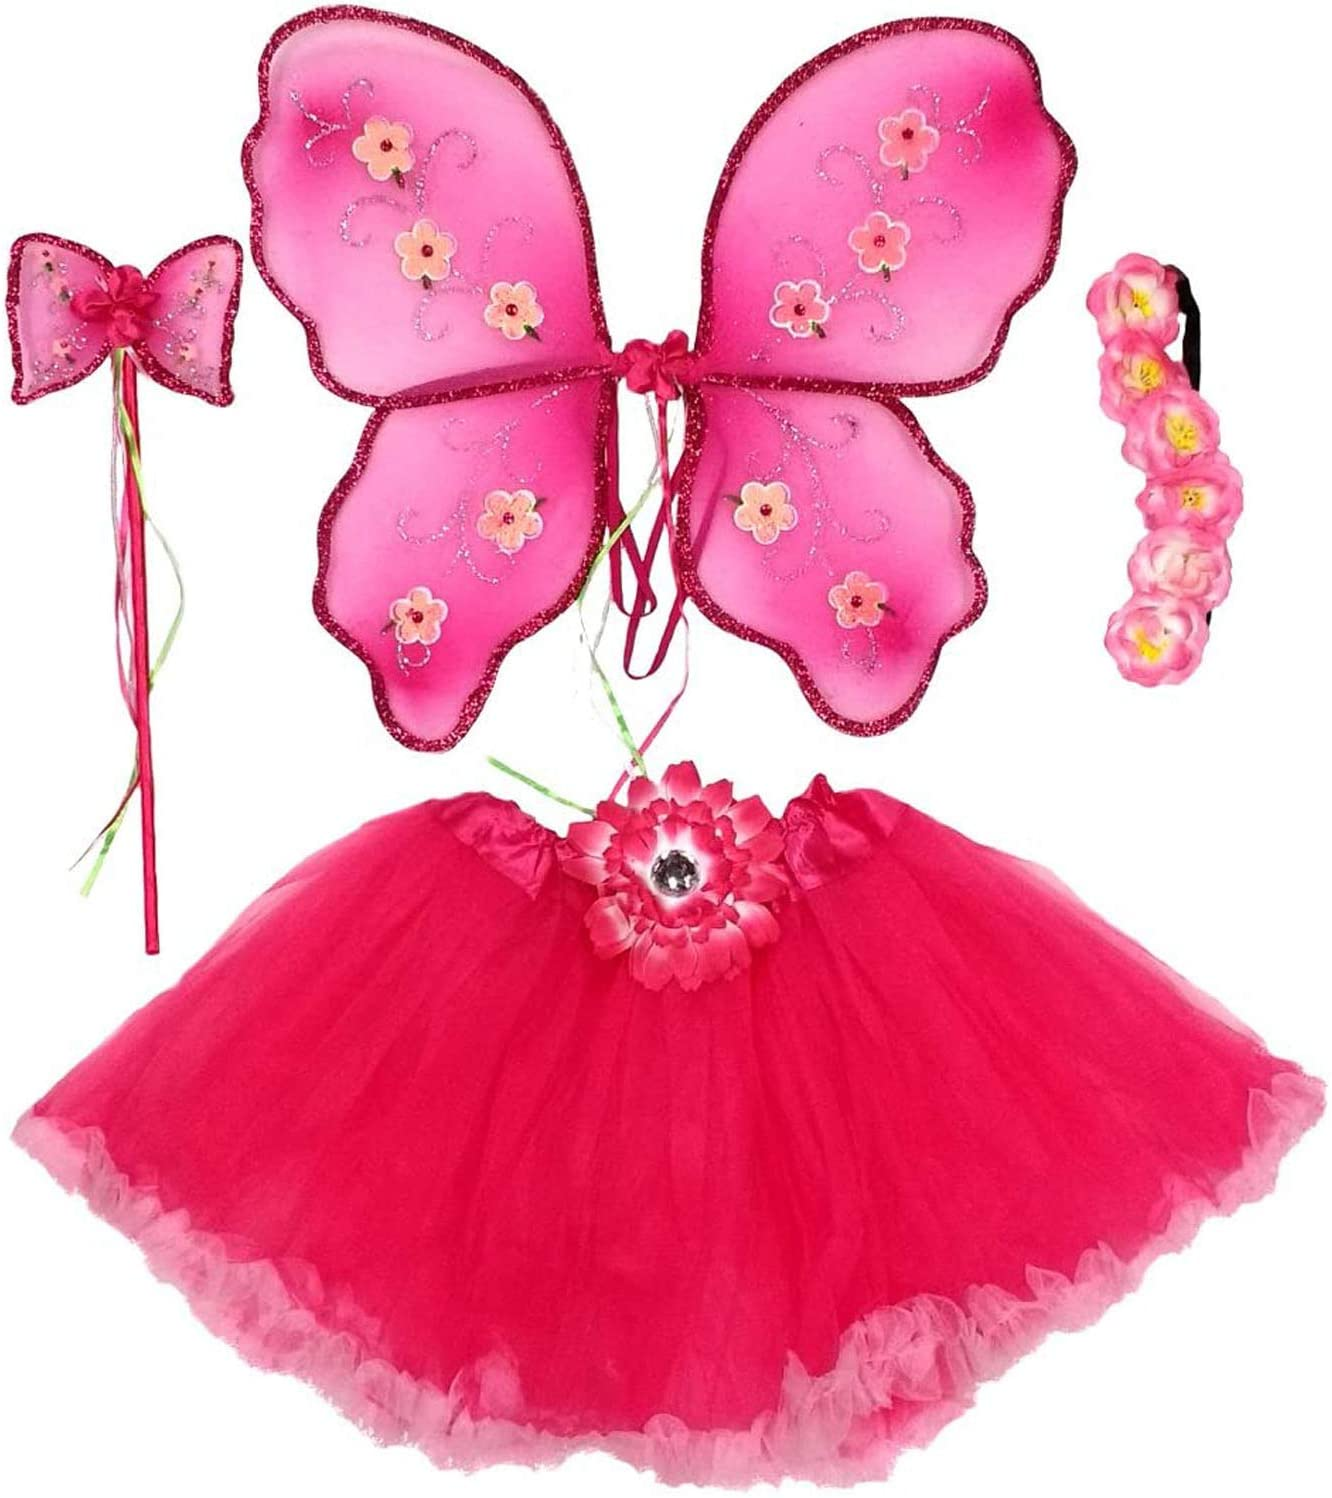 Enchantly Fairy Costume - Fairy Wings for Girls - Butterfly Costume for Girls - Pink Wings, Ruffle Tutu, Wand and Headband